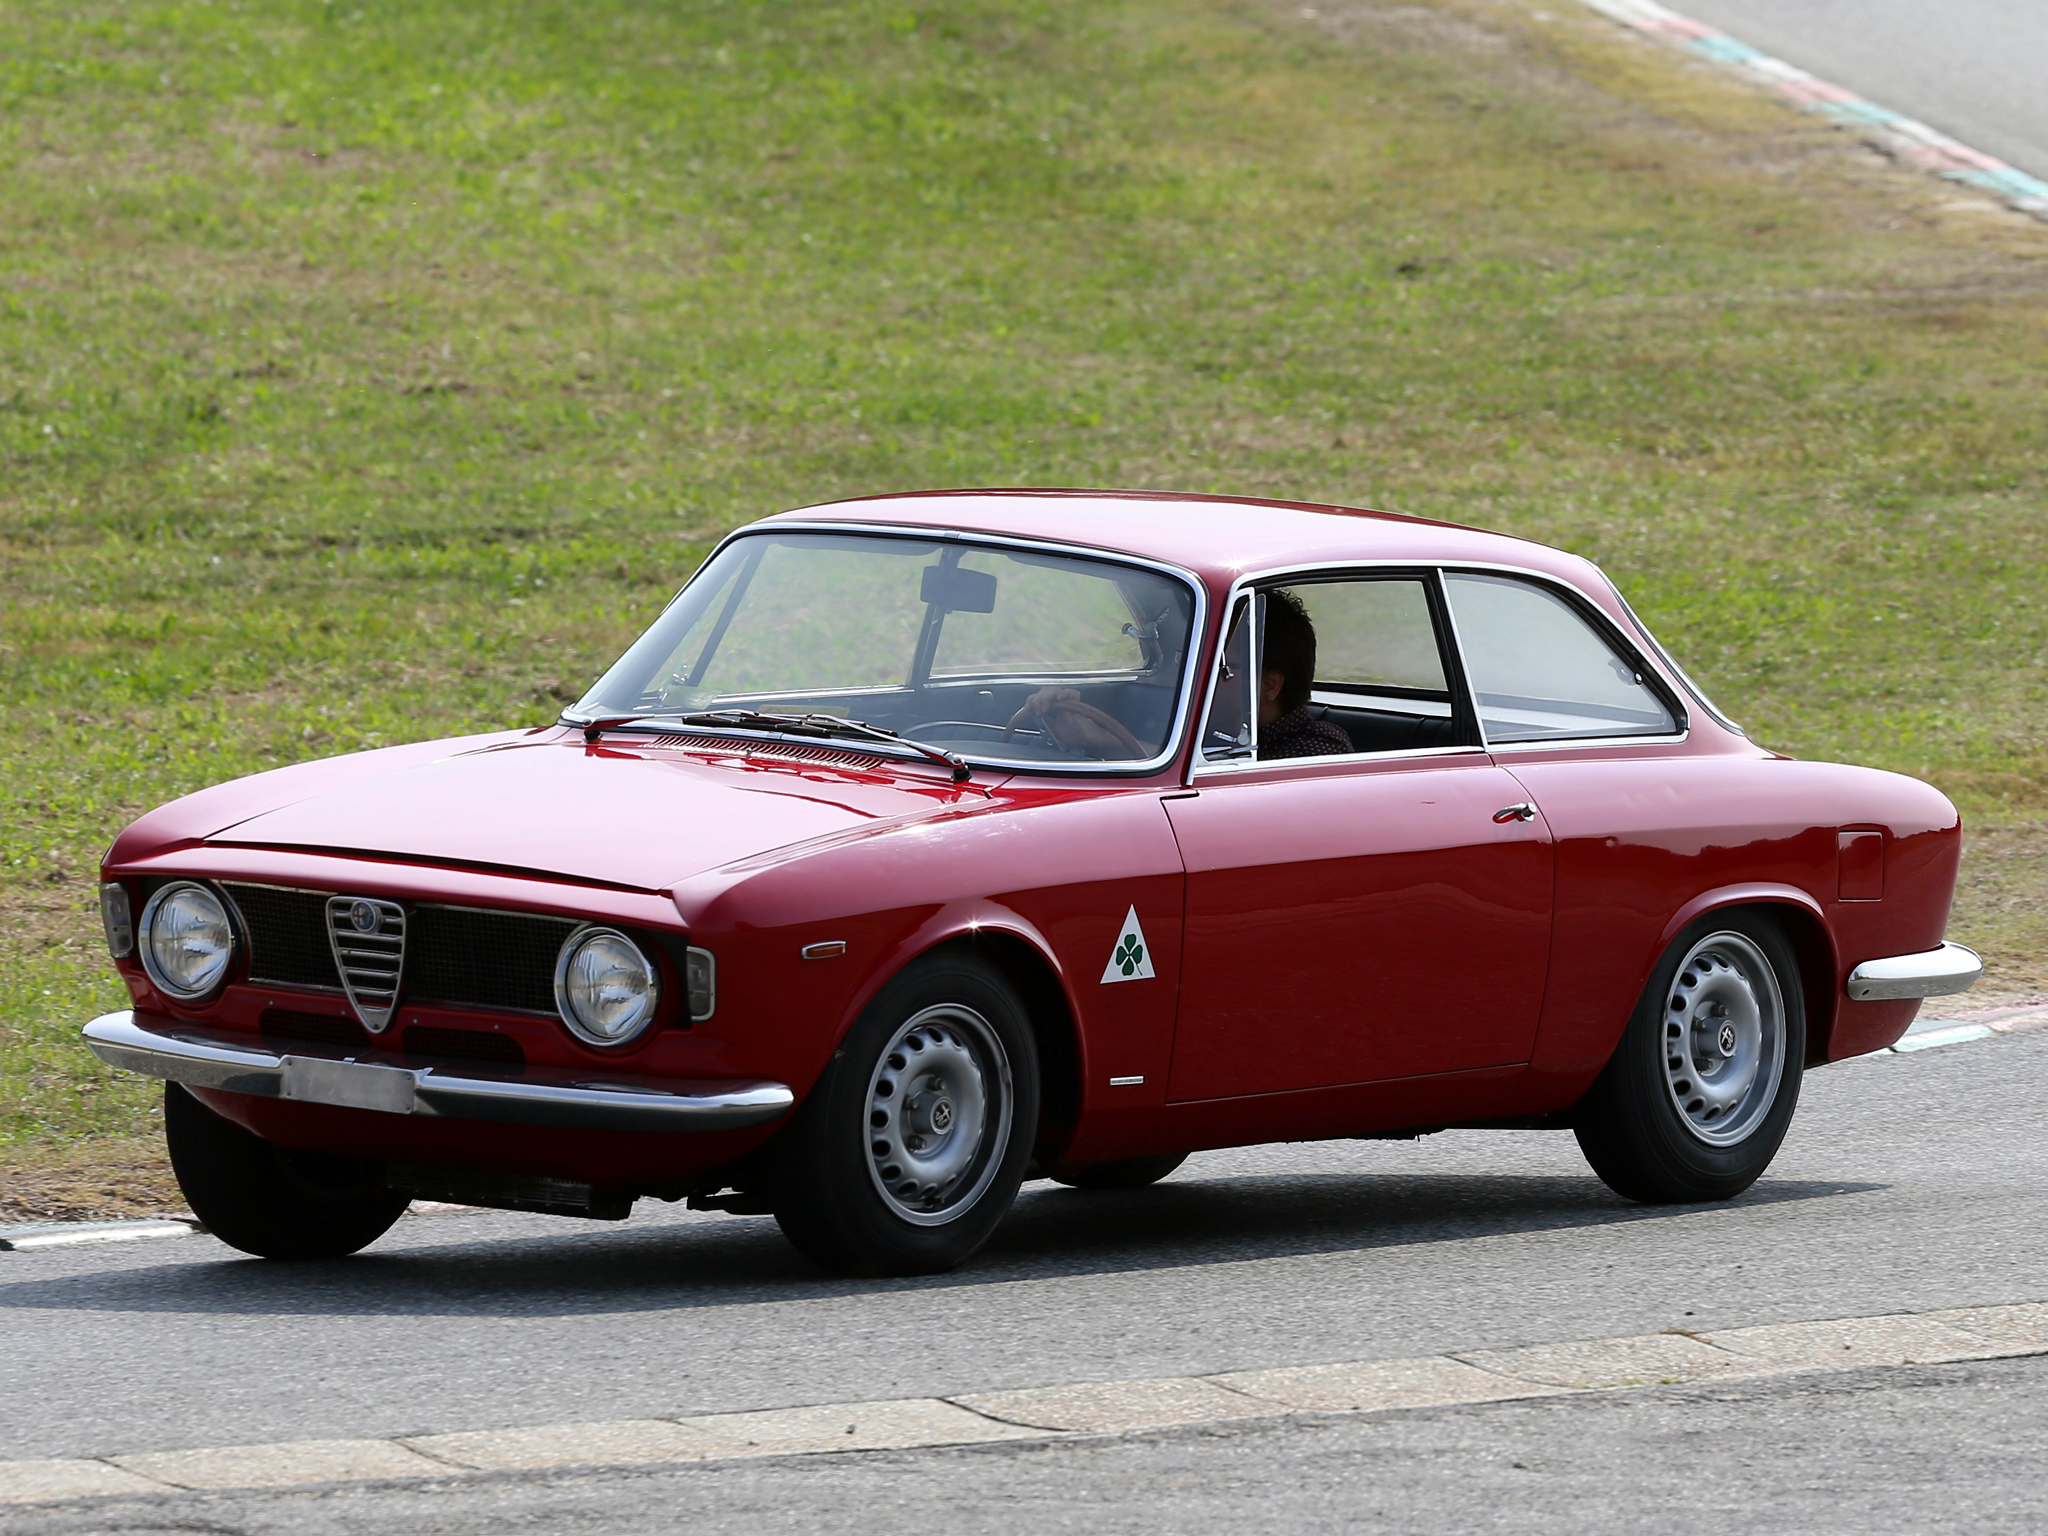 alfa romeo gta coupe seriess #6